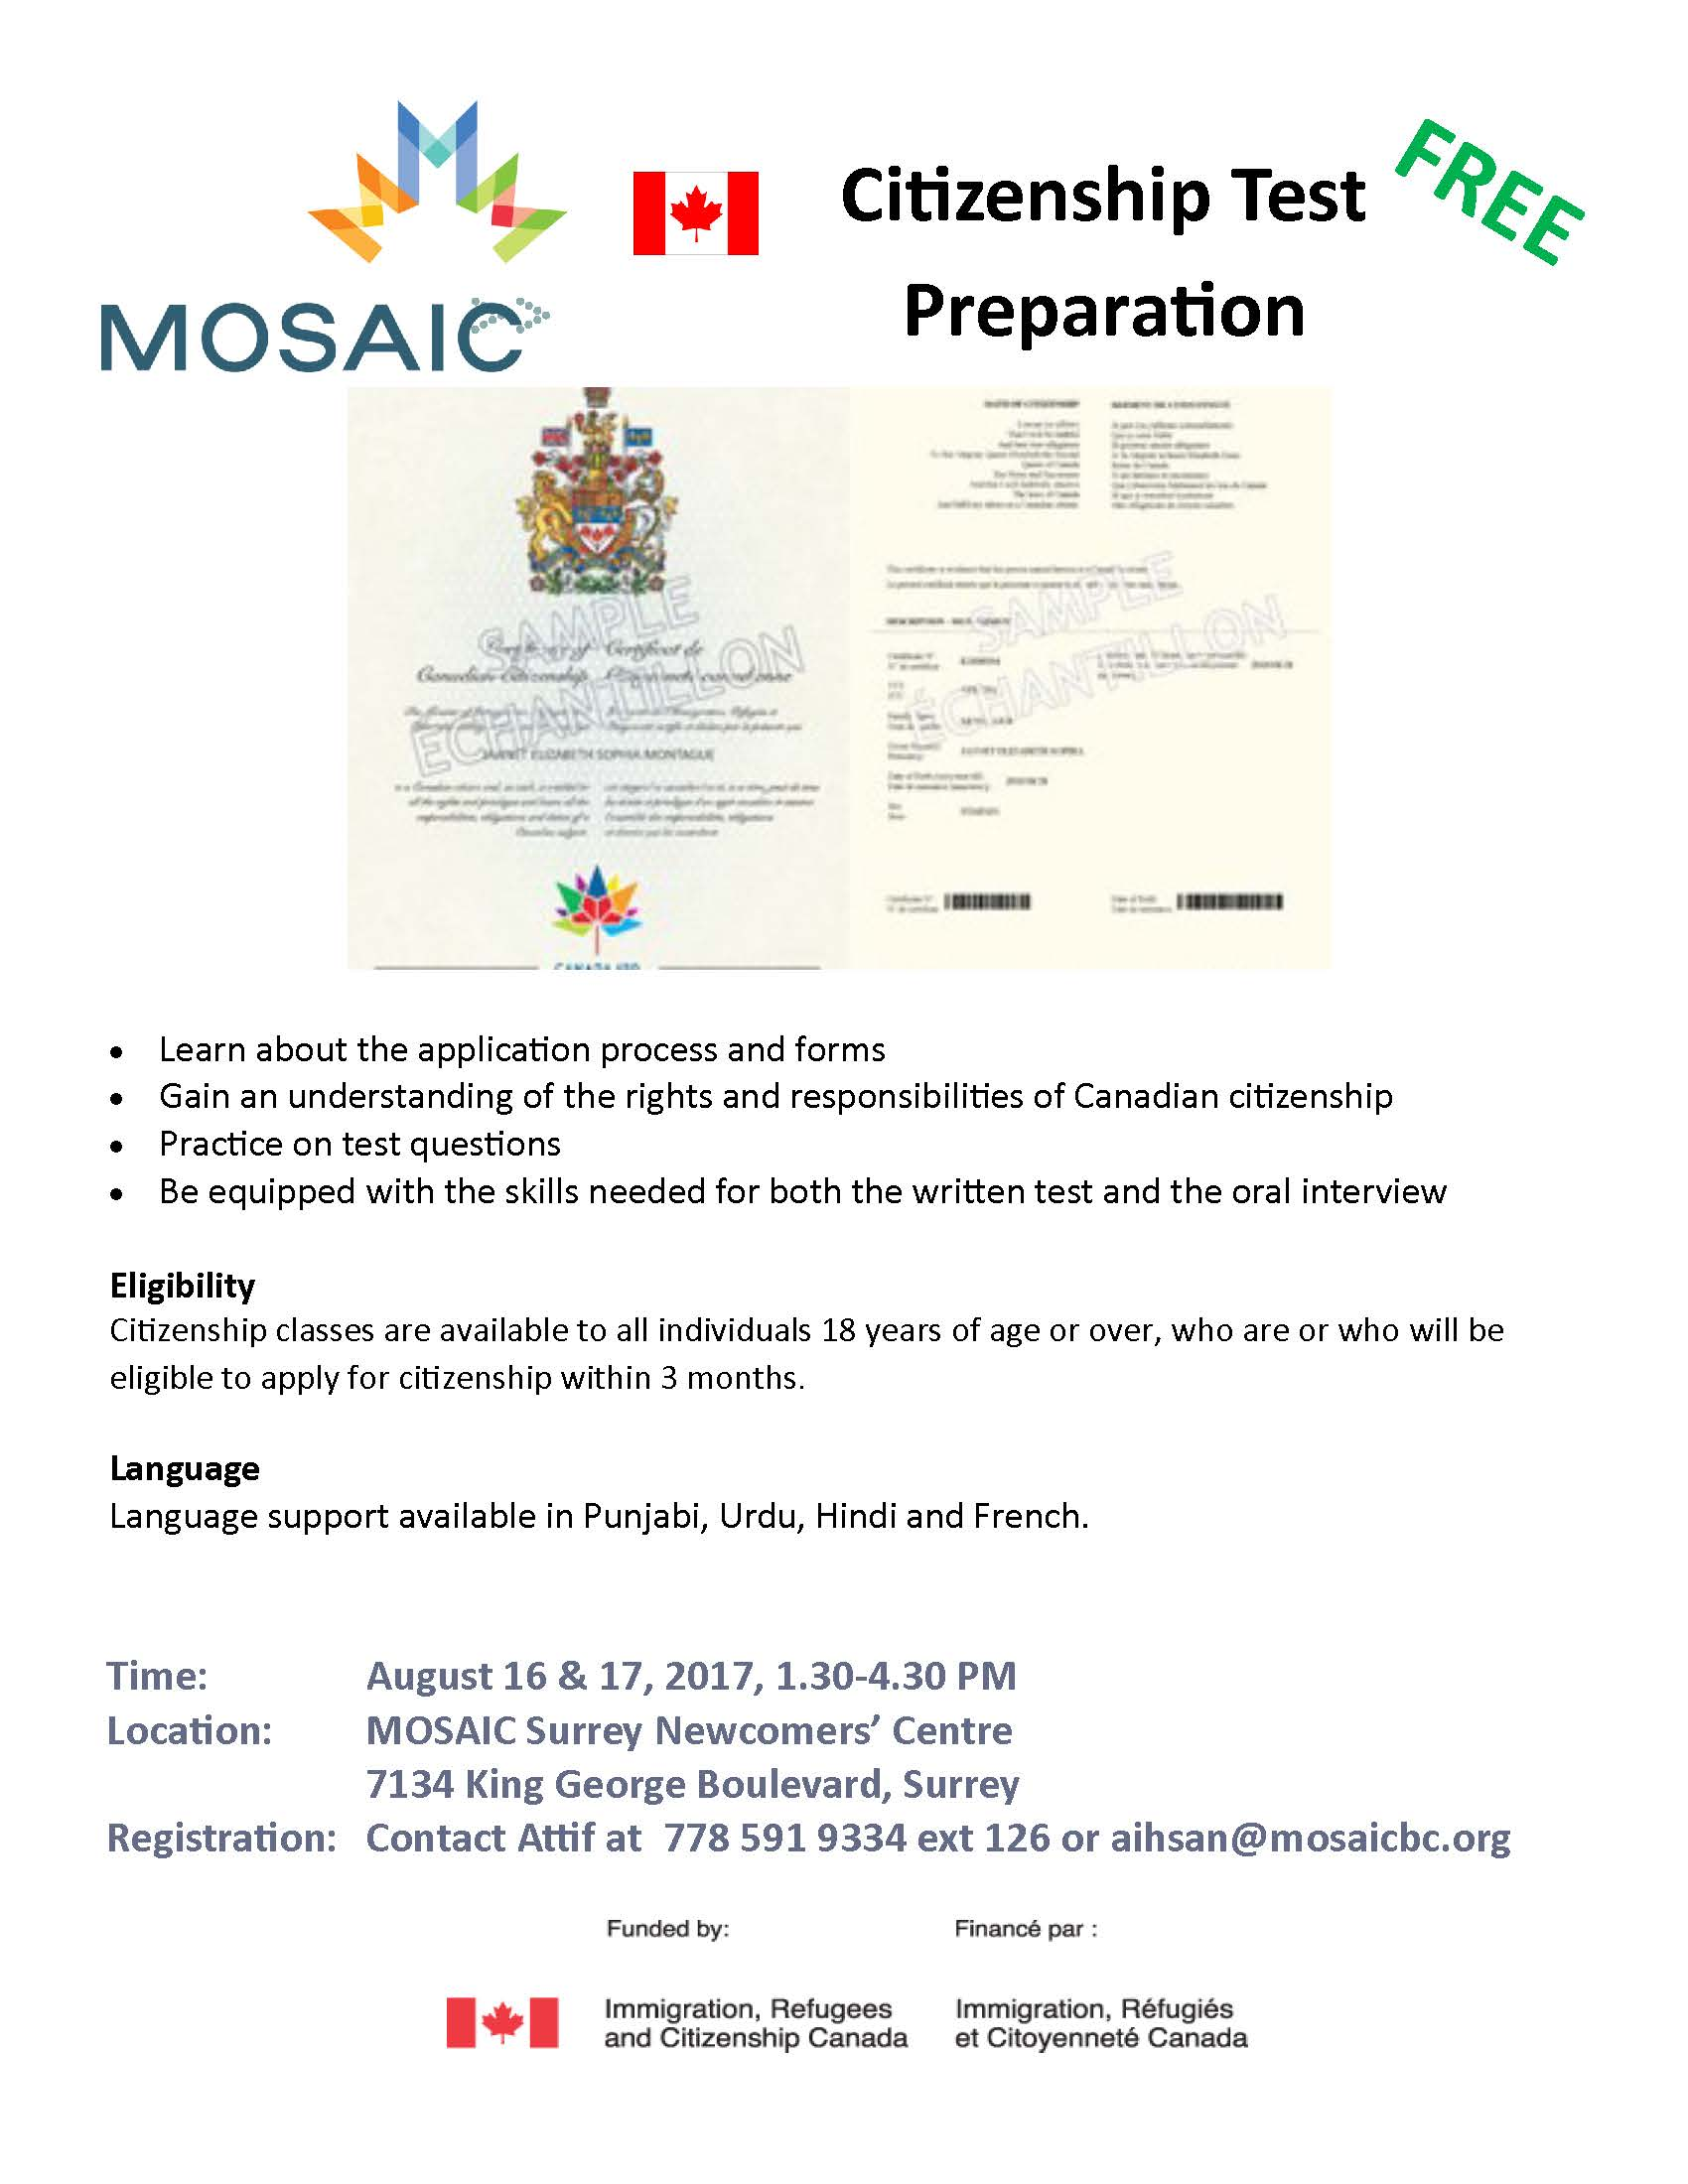 Canadian Citizenship Preparation - MOSAIC